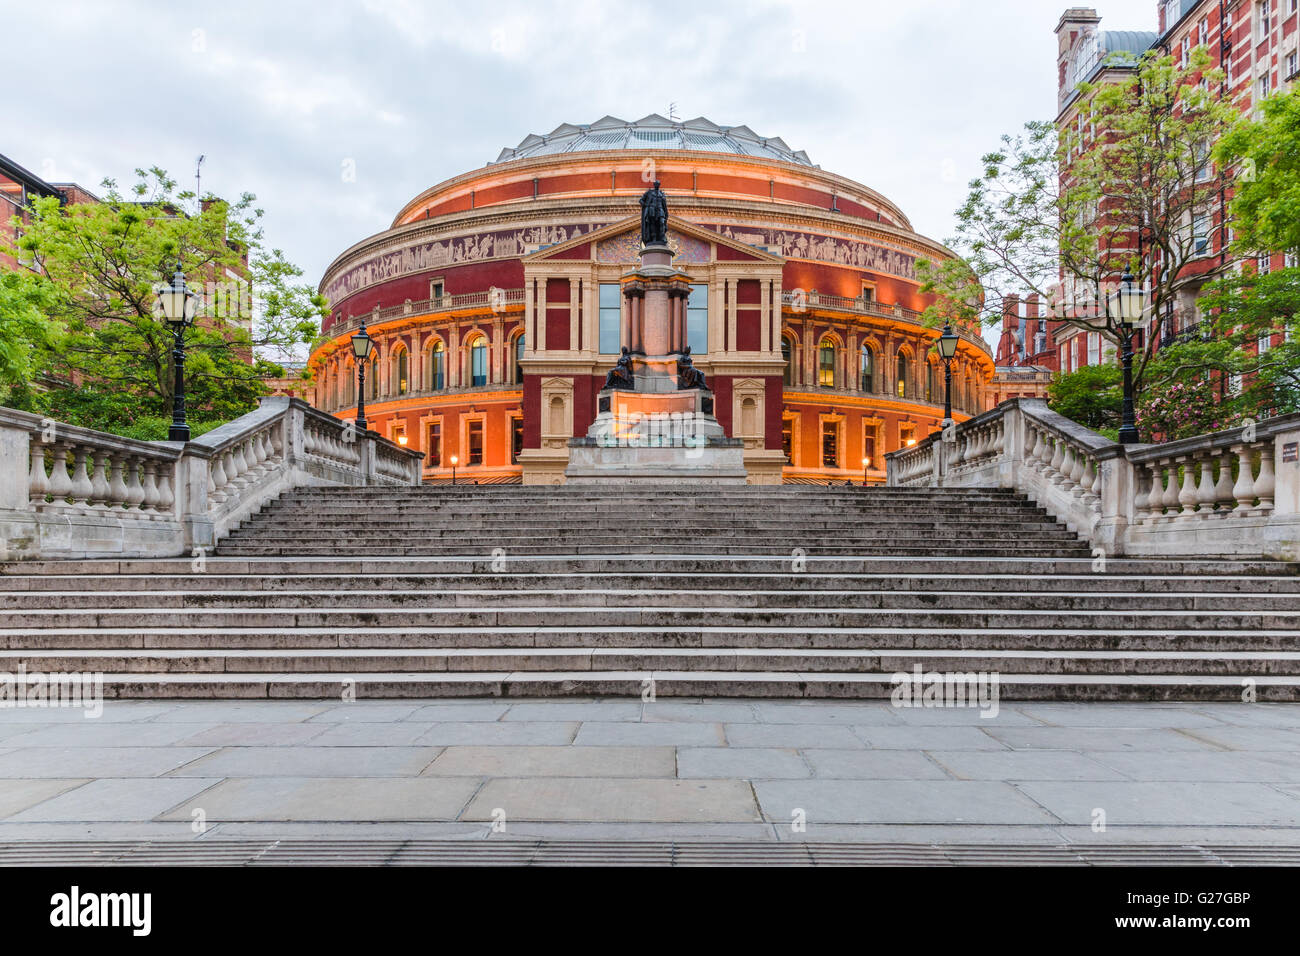 Royal Albert Hall, London, England, UK Stockbild